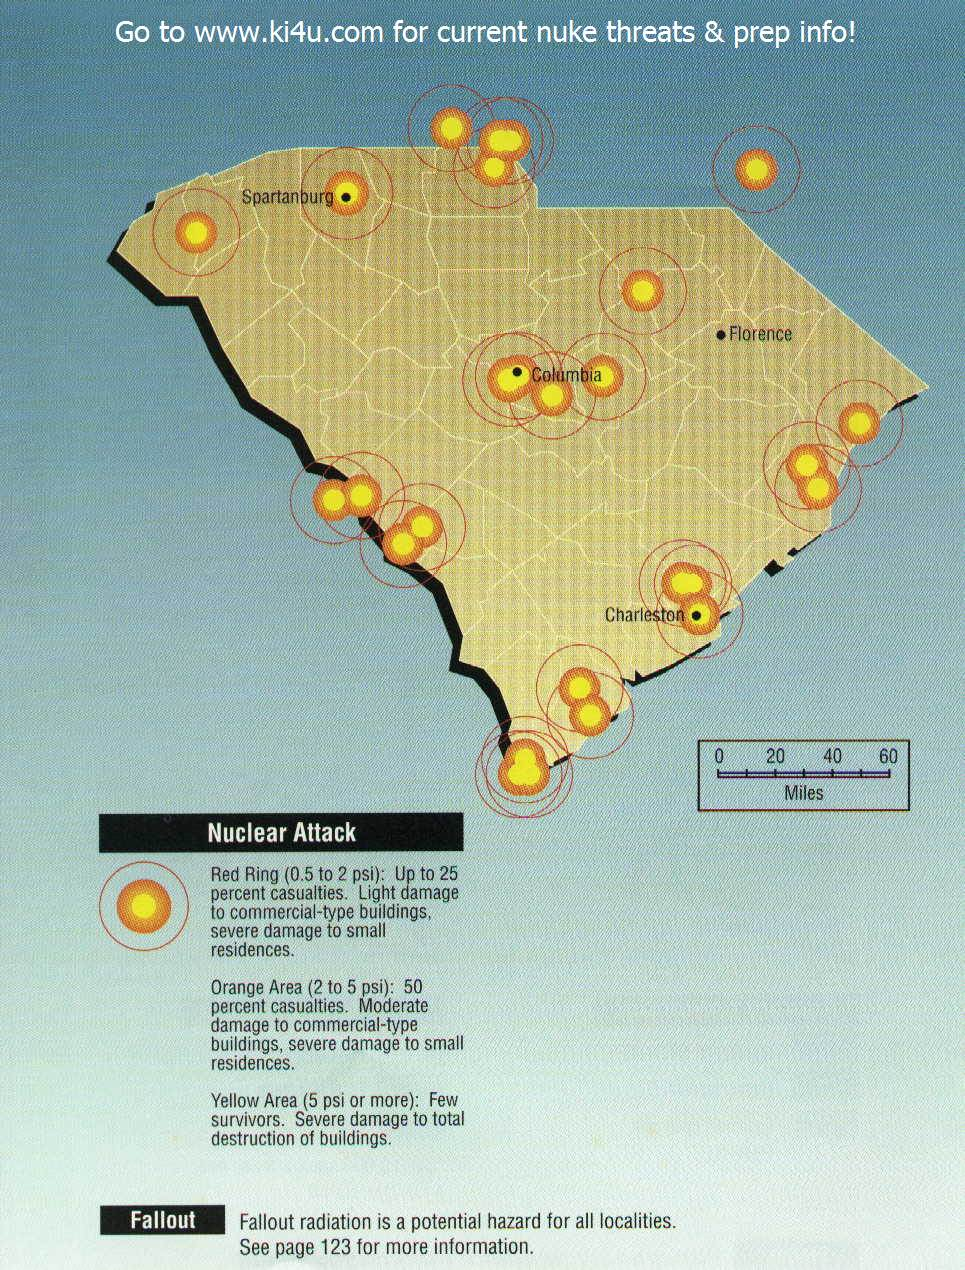 Nuclear War Fallout Shelter Survival Info for South Carolina with ...